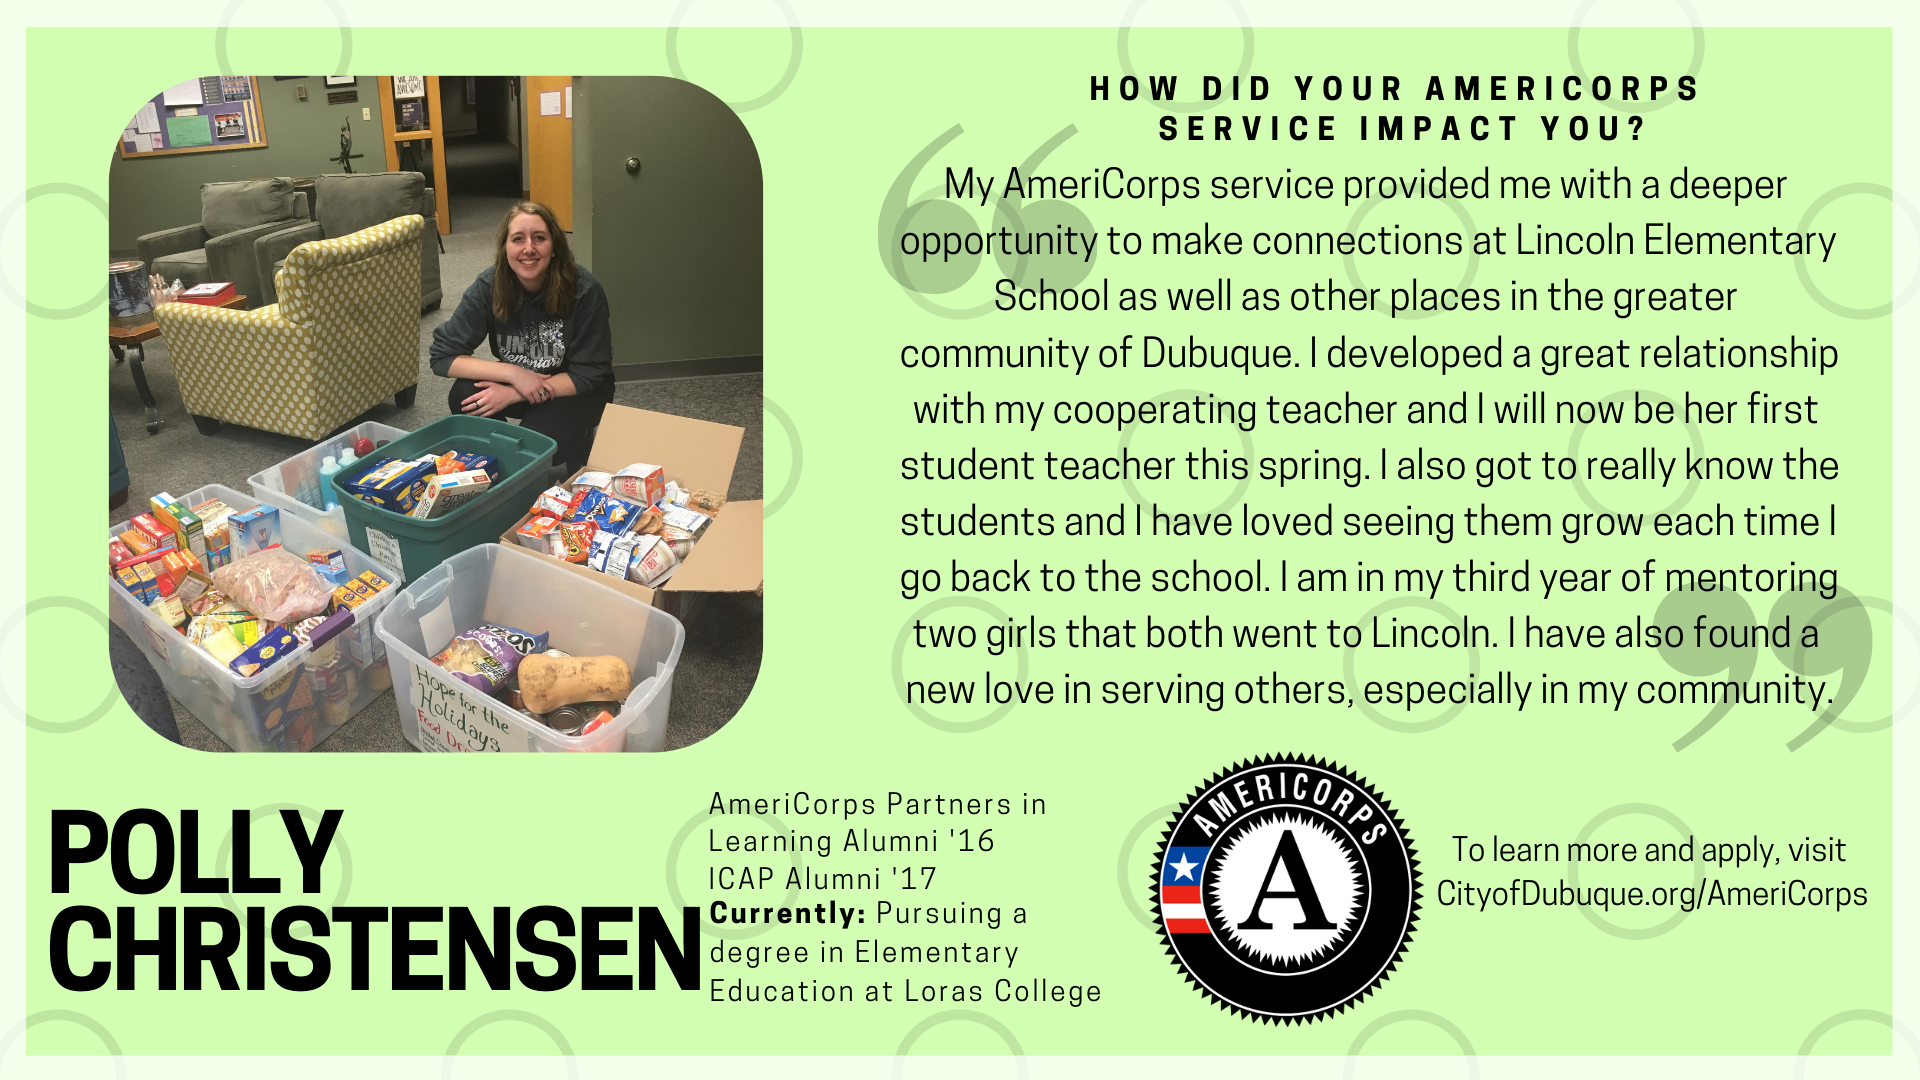 My AmeriCorps service provided me with a deeper opportunity to make connections at Lincoln Elementar